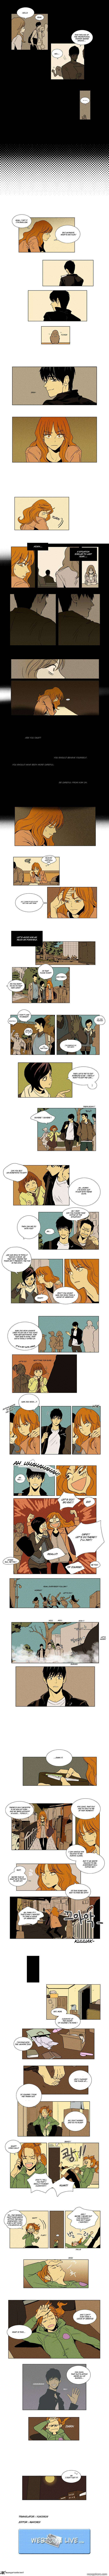 Cheese In The Trap 5 Page 2